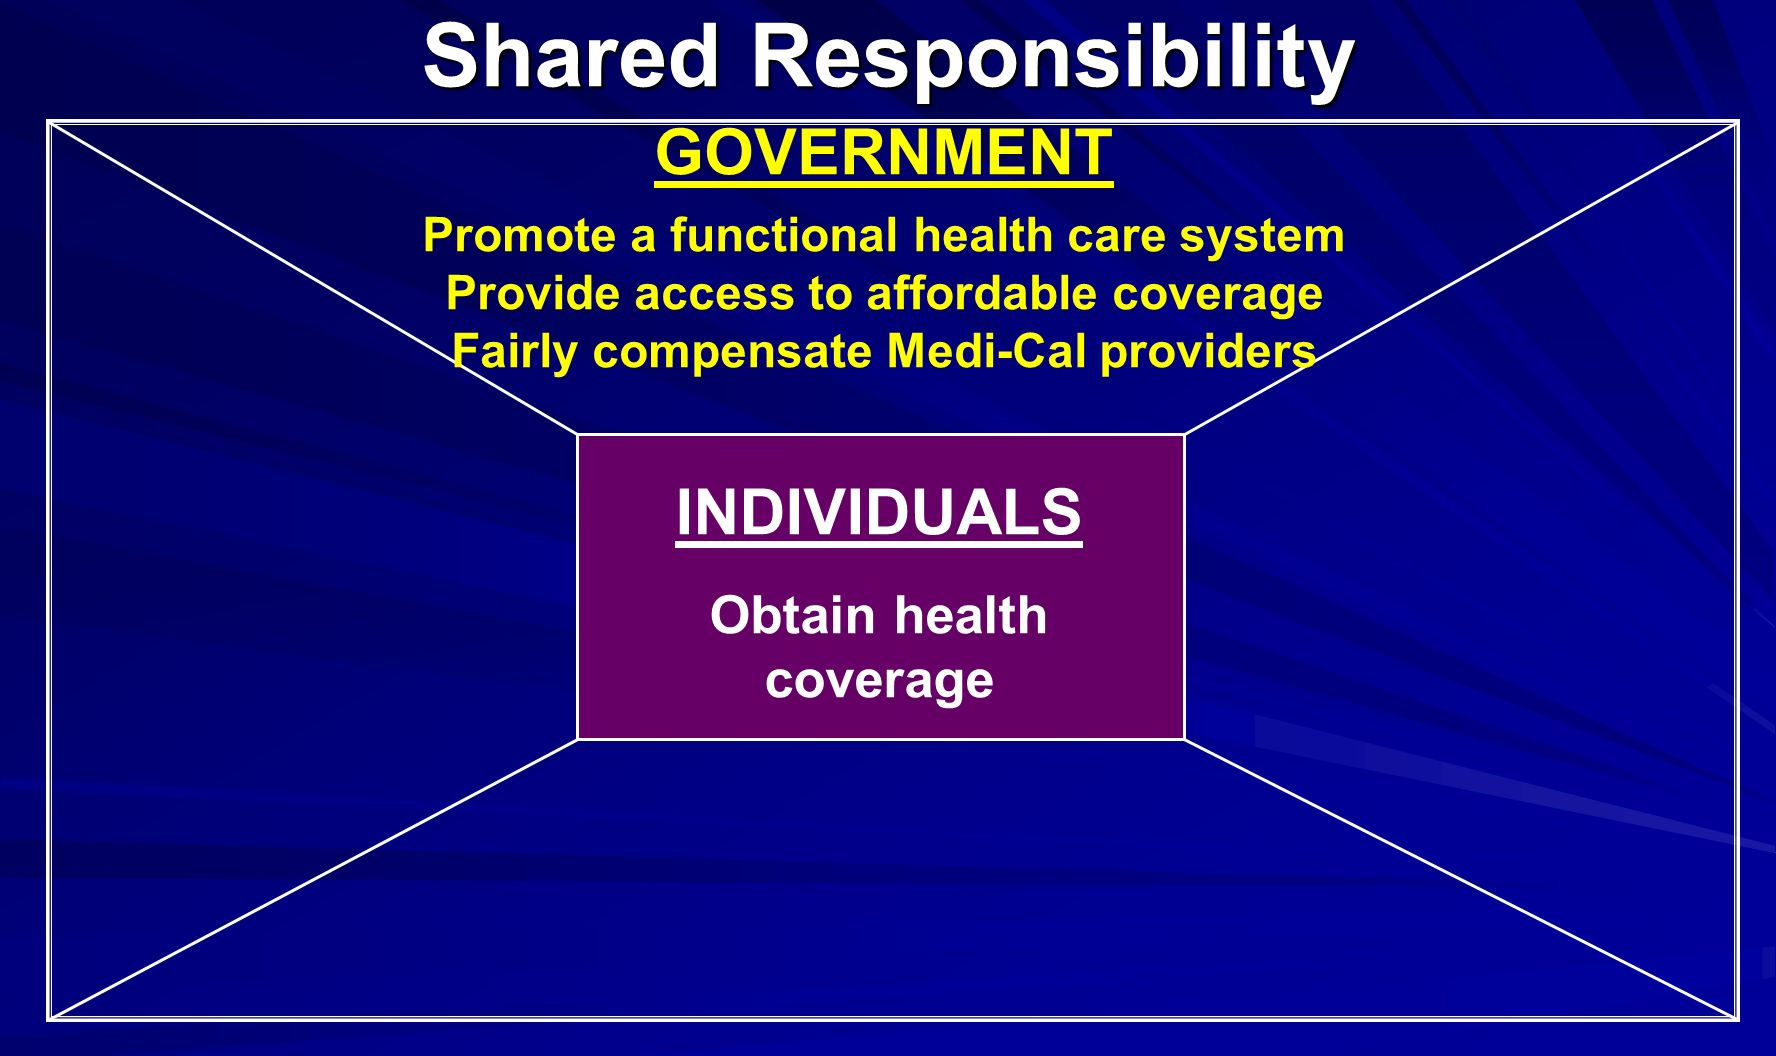 INDIVIDUALS Obtain health coverage Shared Responsibility GOVERNMENT Promote a functional health care system Provide access to affordable coverage Fair